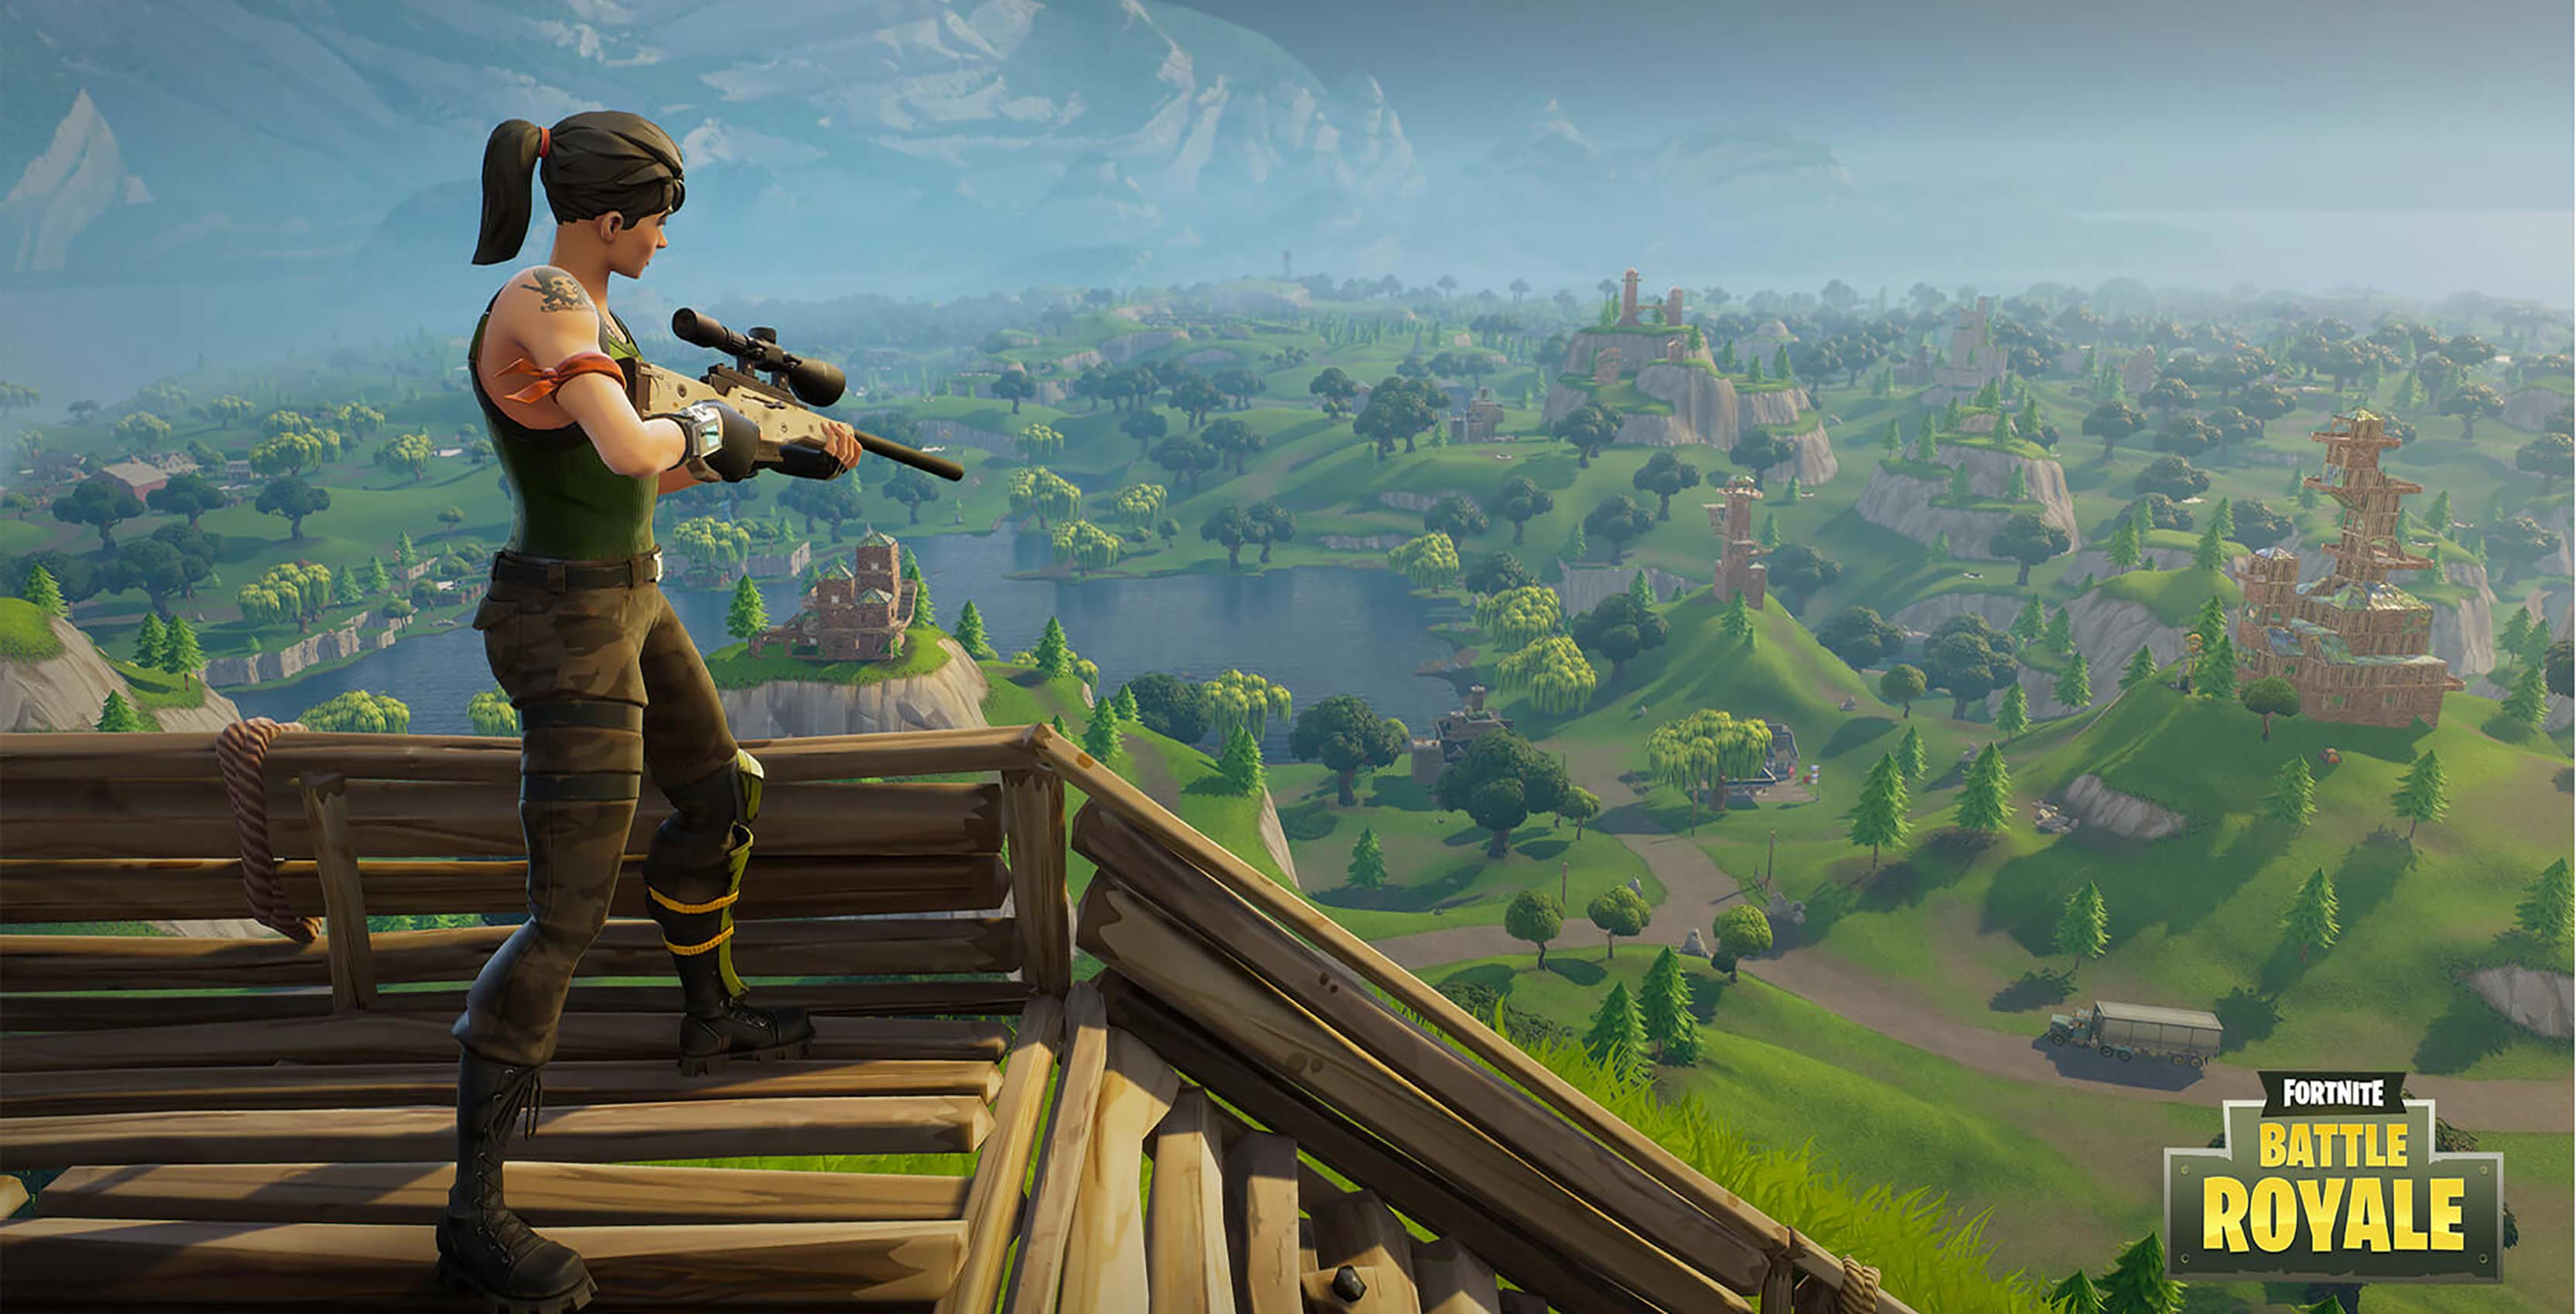 Fortnite becomes the first game to support PS4 and Xbox 3328x1697